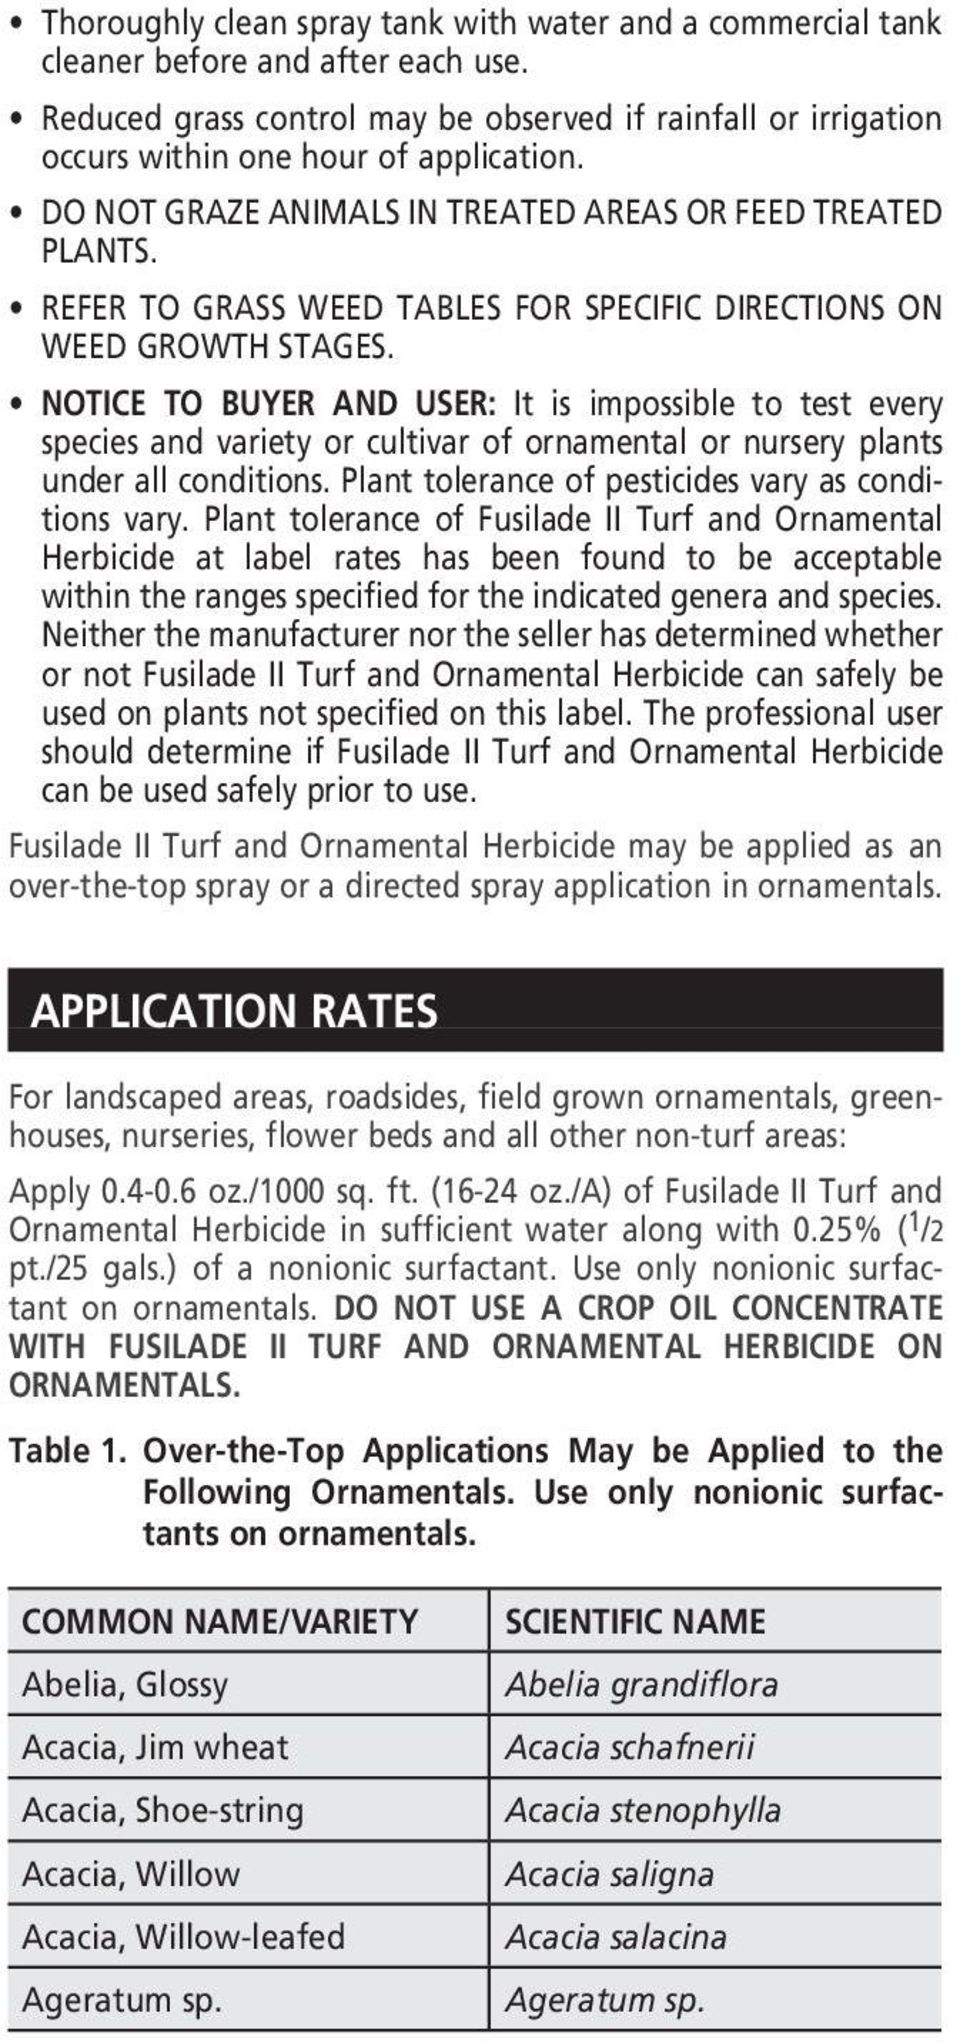 NOTICE TO BUYER AND USER: It is impossible to test every species and variety or cultivar of ornamental or nursery plants under all conditions. Plant tolerance of pesticides vary as conditions vary.